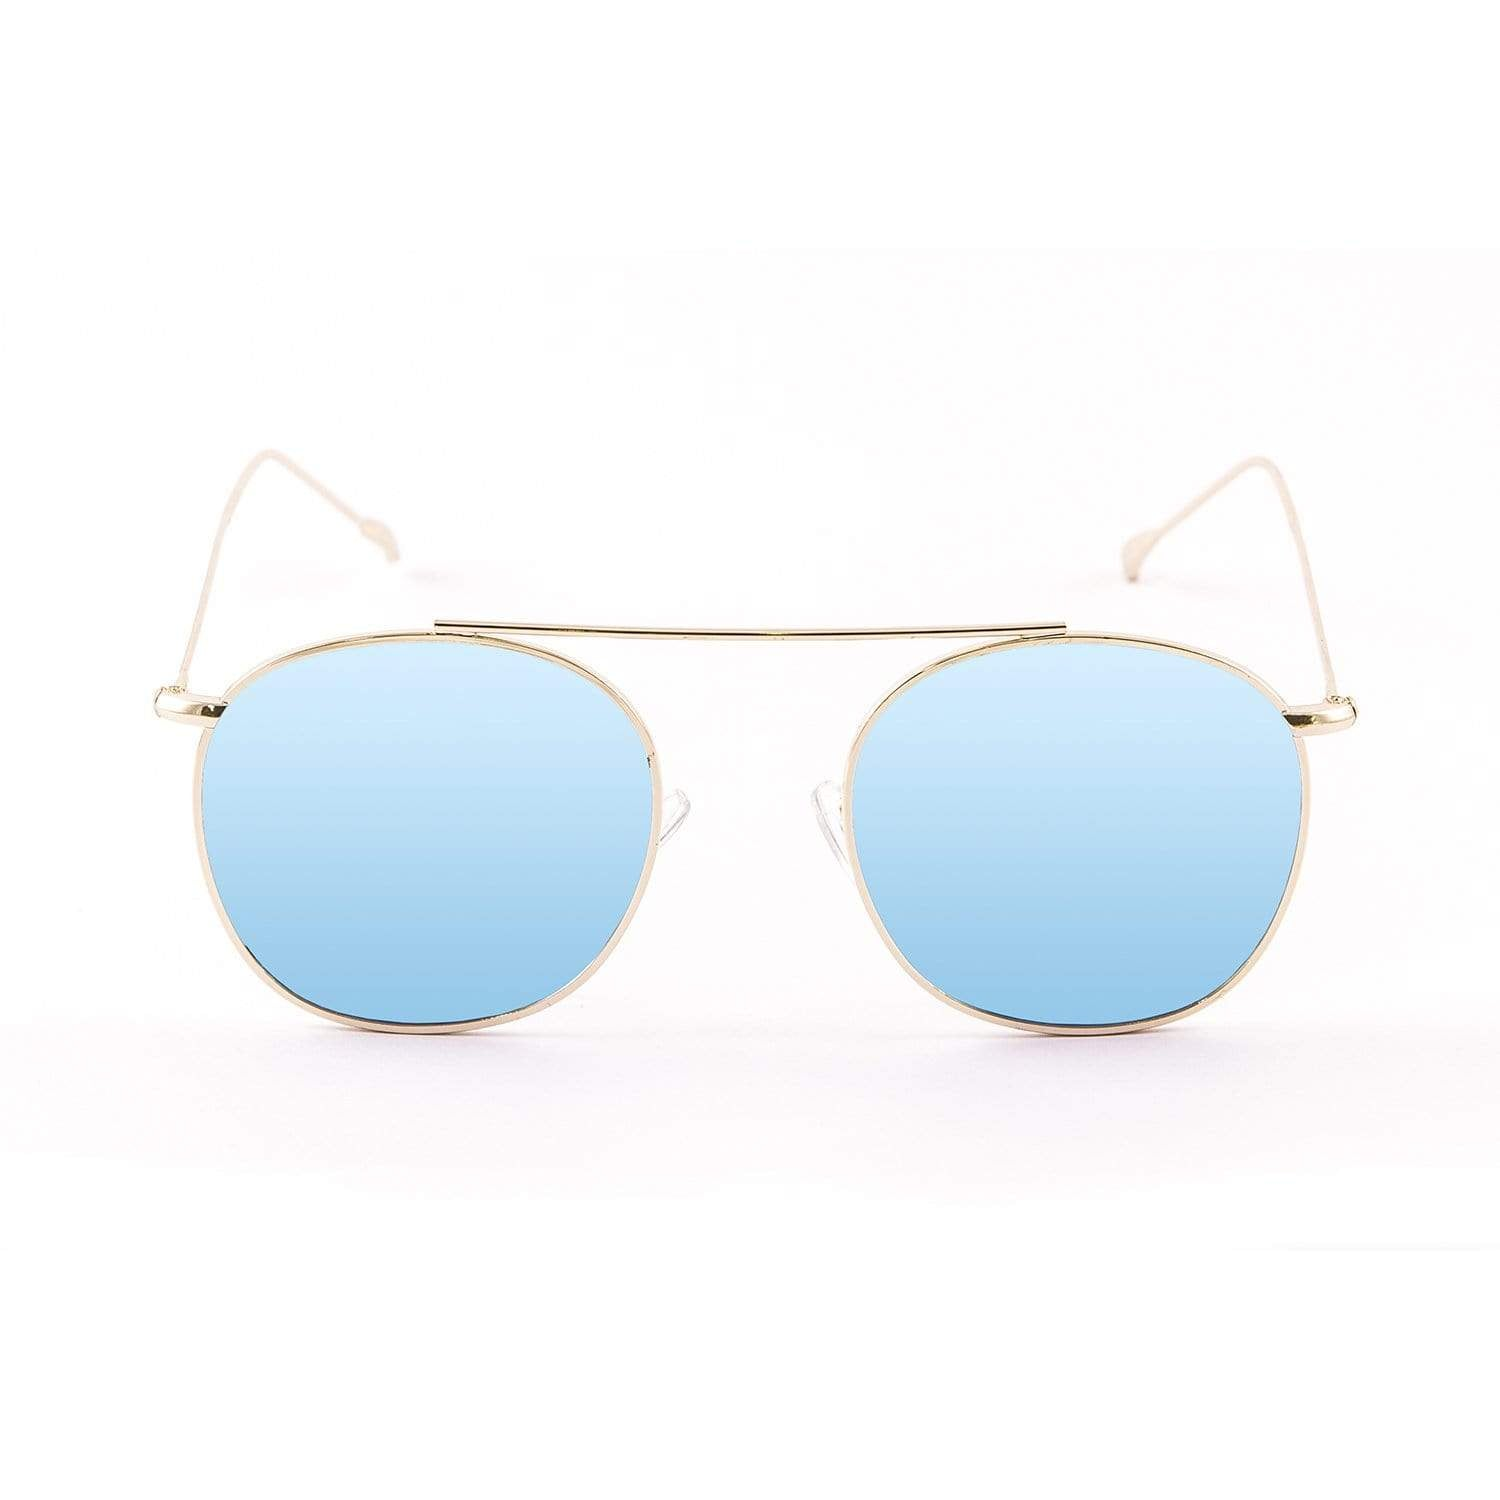 Ocean Sunglasses Accessories Sunglasses blue / NOSIZE Ocean Sunglasses - MEMPHIS